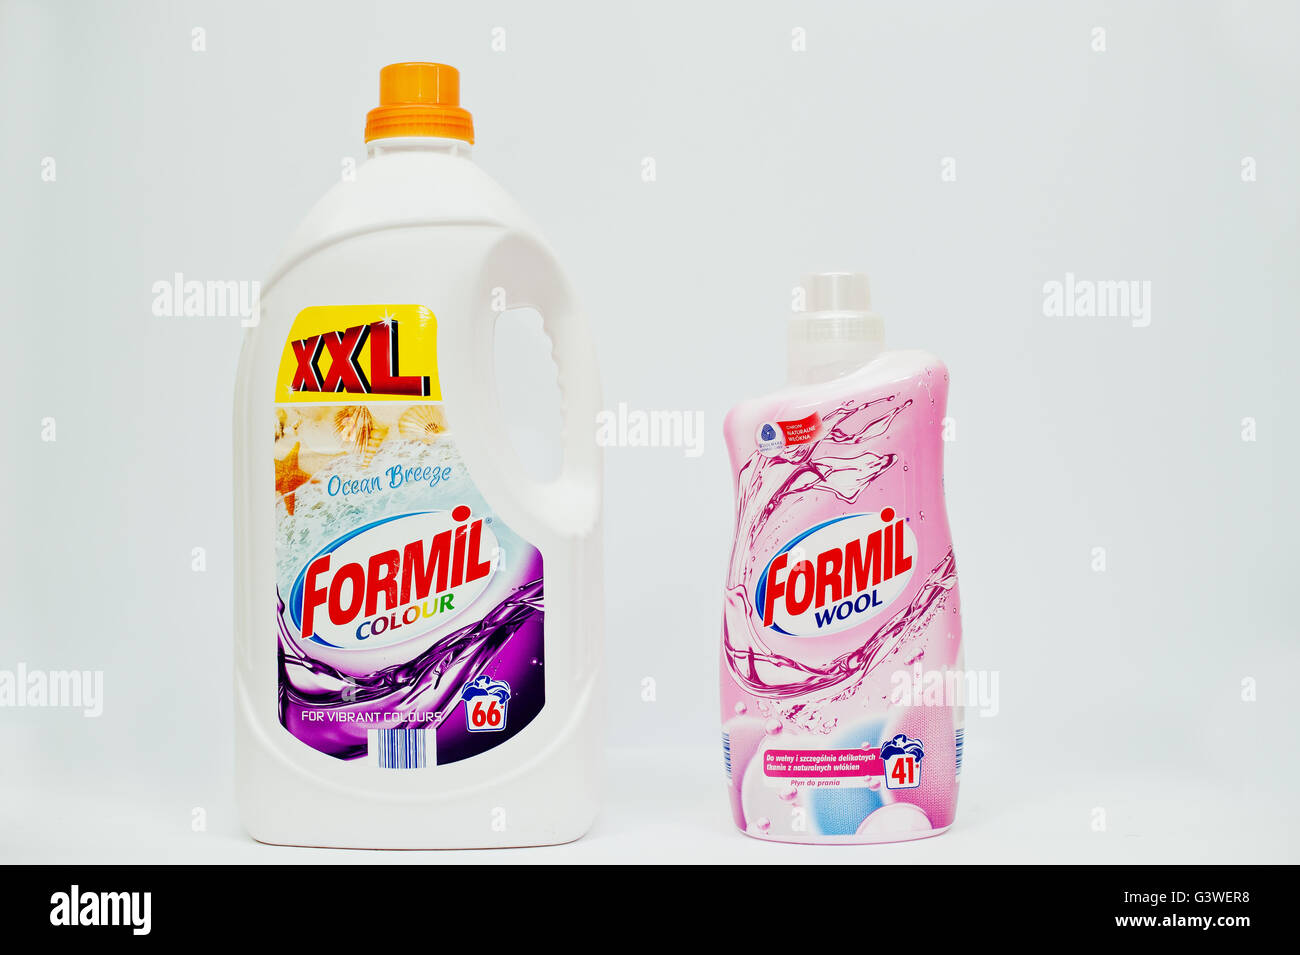 Berezovitsa, Ukraine - circa june, 2016: Fabric softener, laundry detergent or fabric conditioner Formil colour Stock Photo